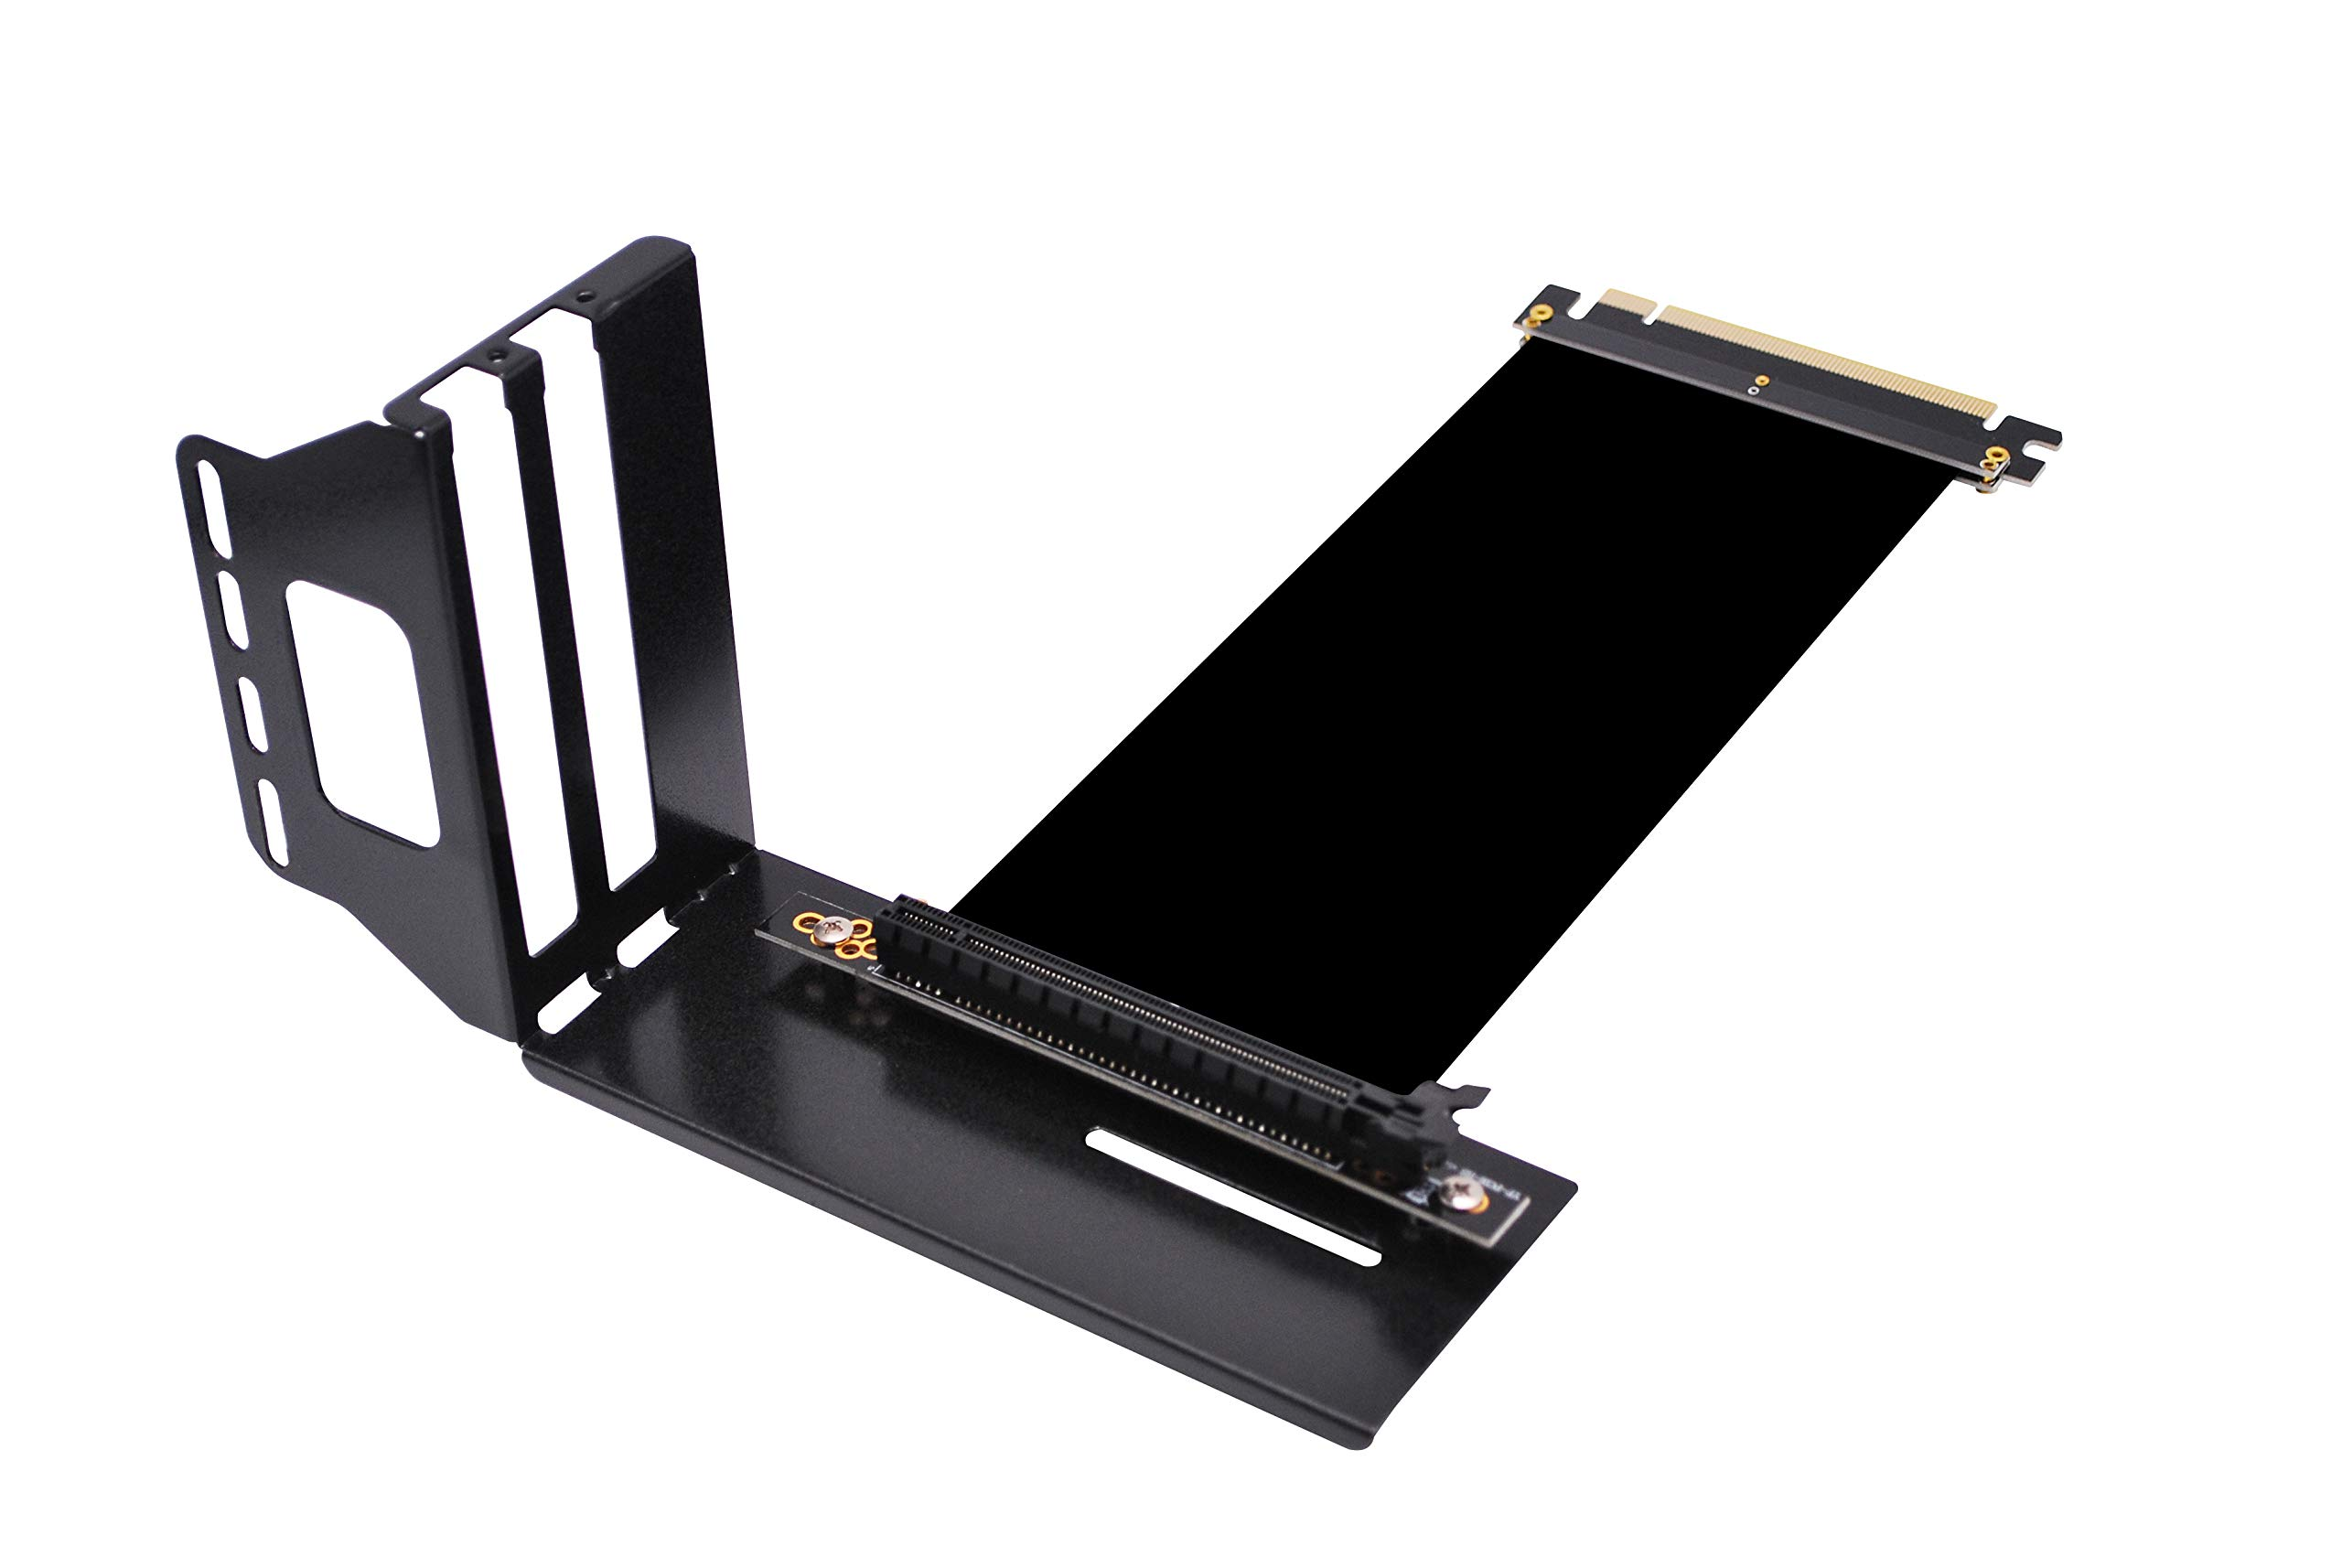 Kaislin Vertical Graphics Card Holder Bracket,GPU Mount ,Video Card Support Kit with Riser Cable by Kaislin